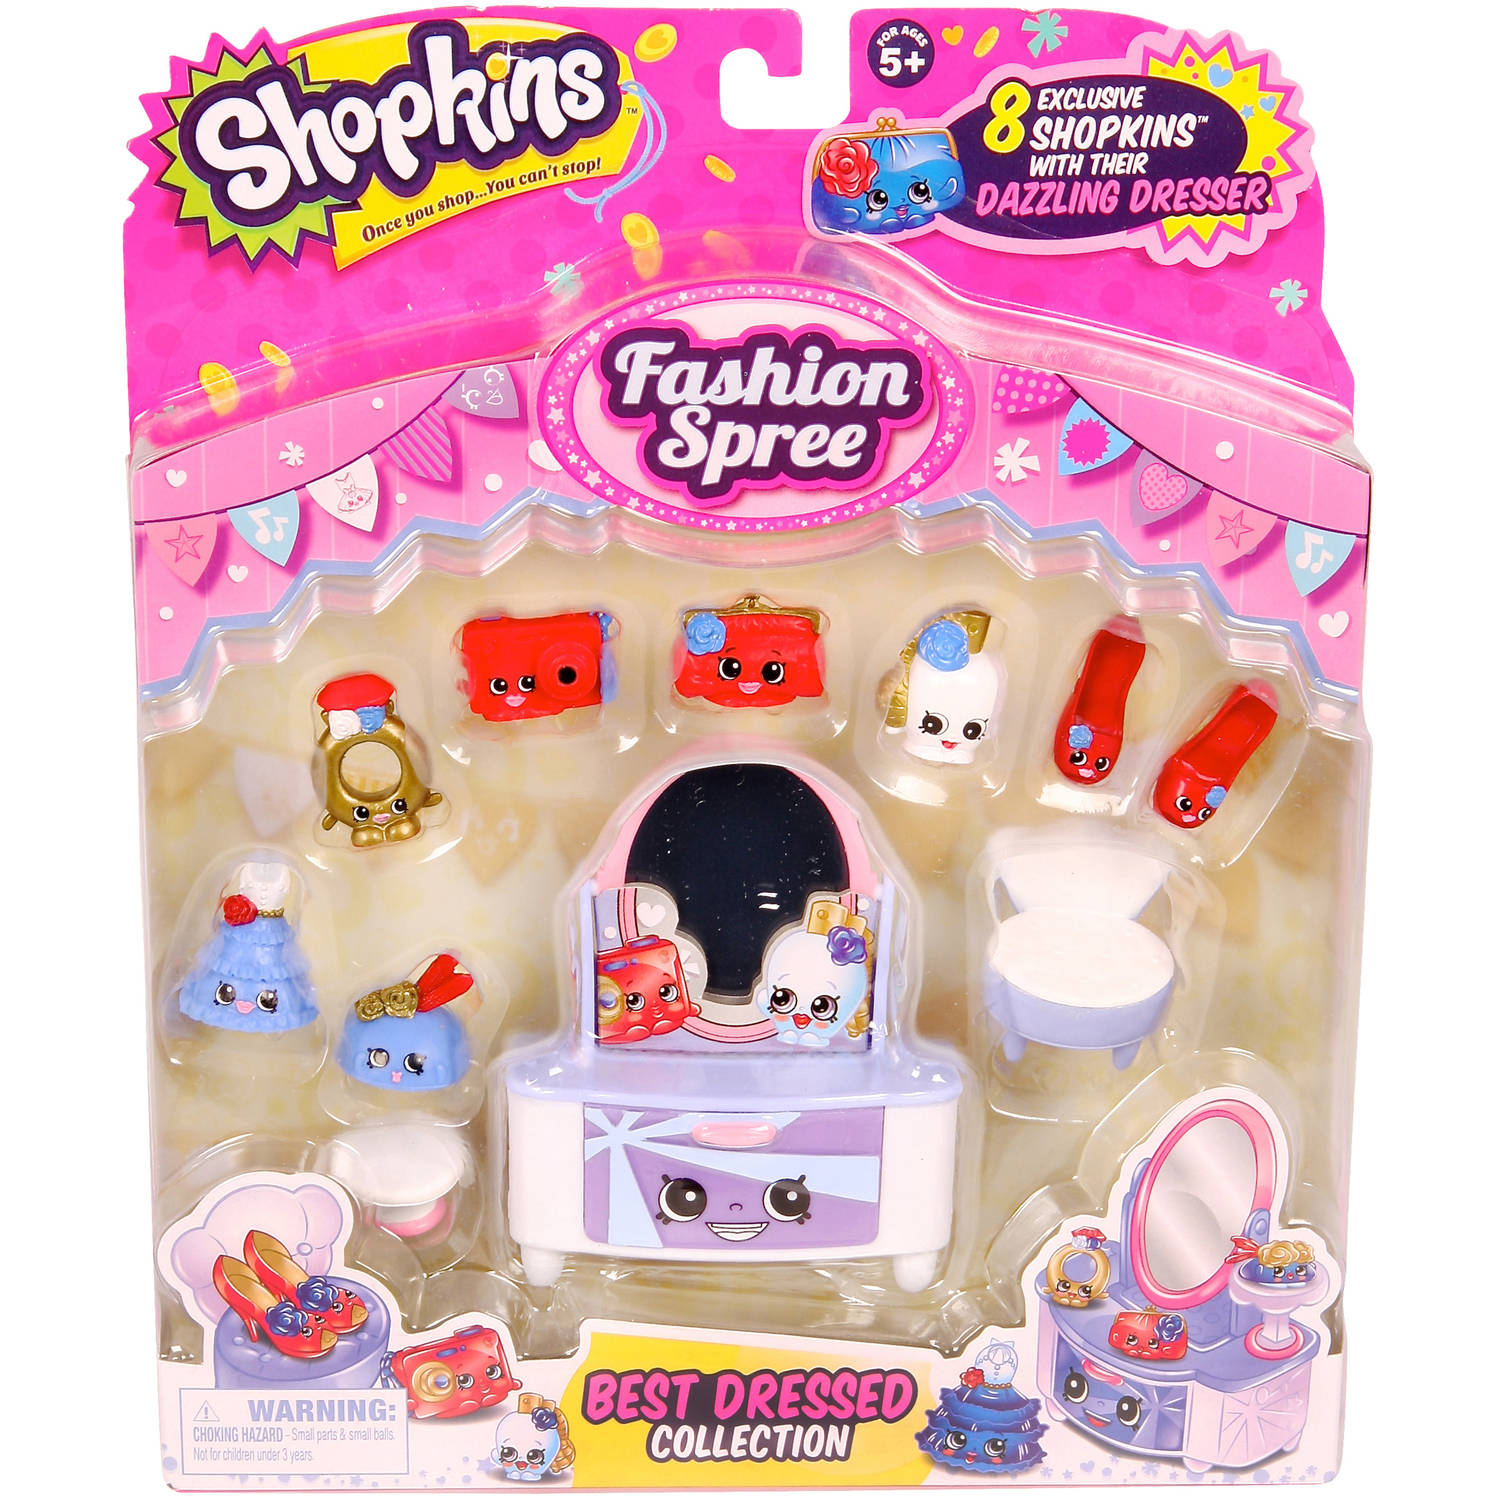 Moose Toys Shopkins Season 3 Fashion Spree Themed Pack Best Dressed Collection